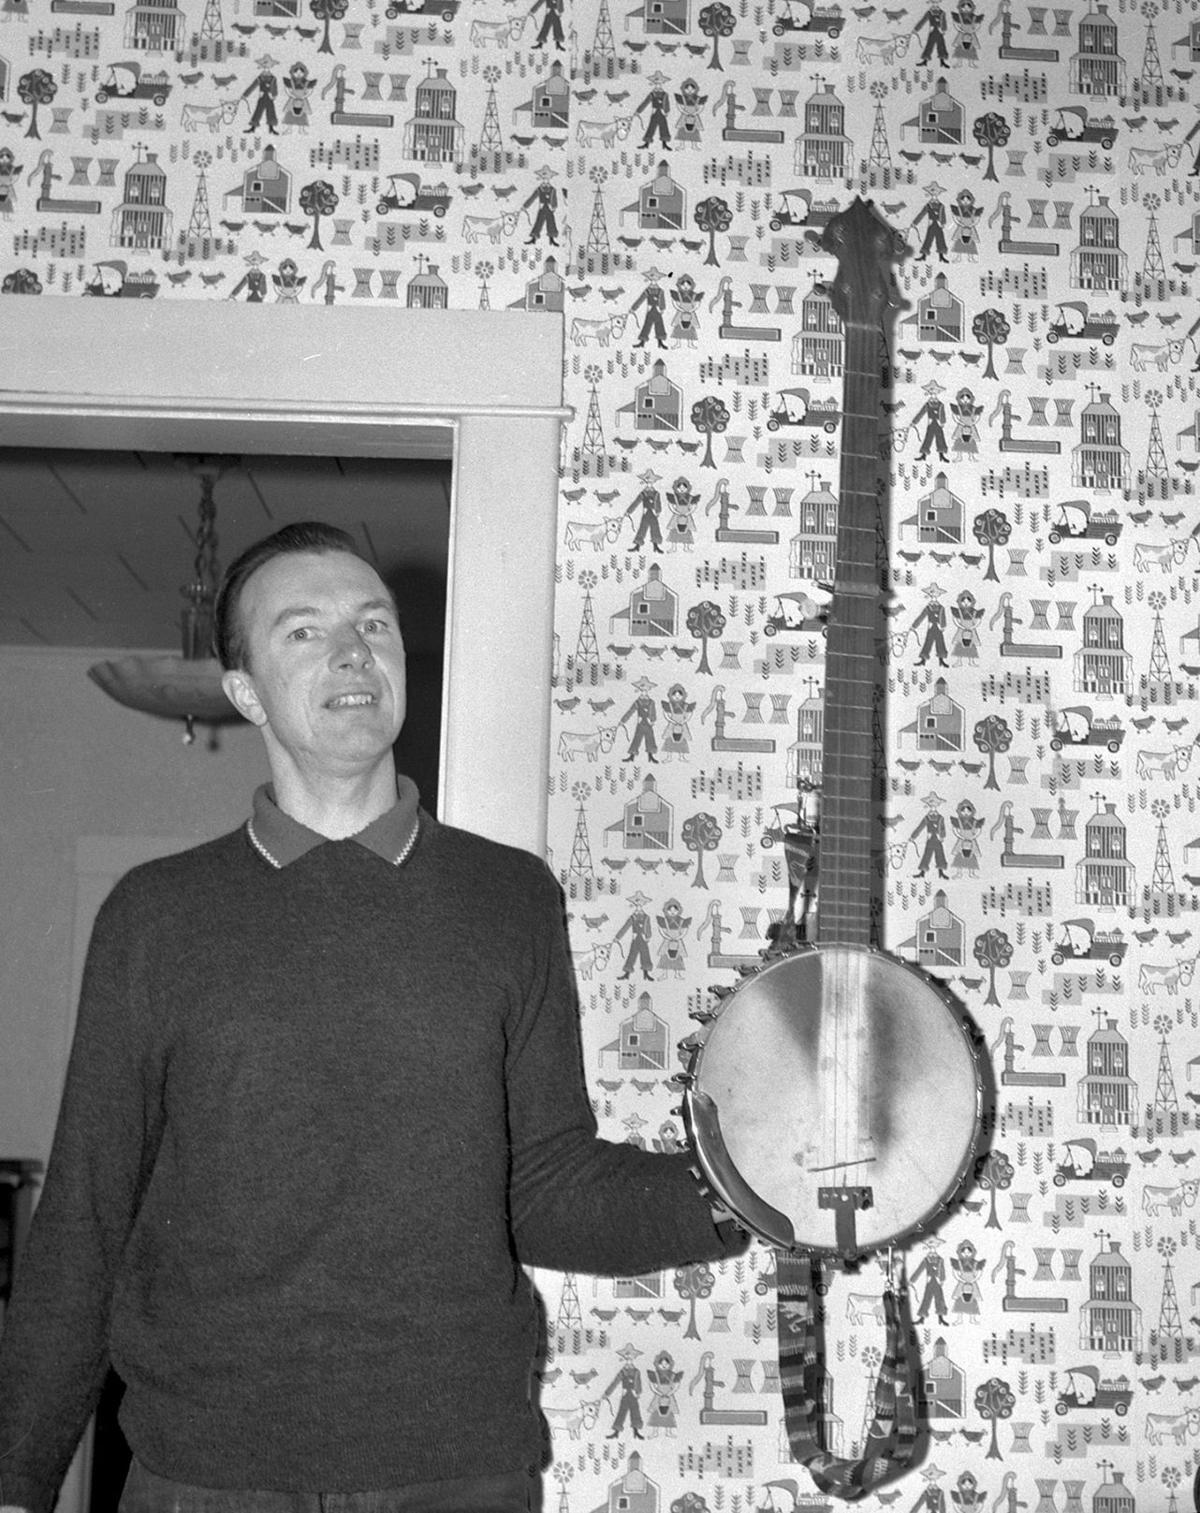 Pete Seeger: Young Keith Clark didn't know he was a famous musician